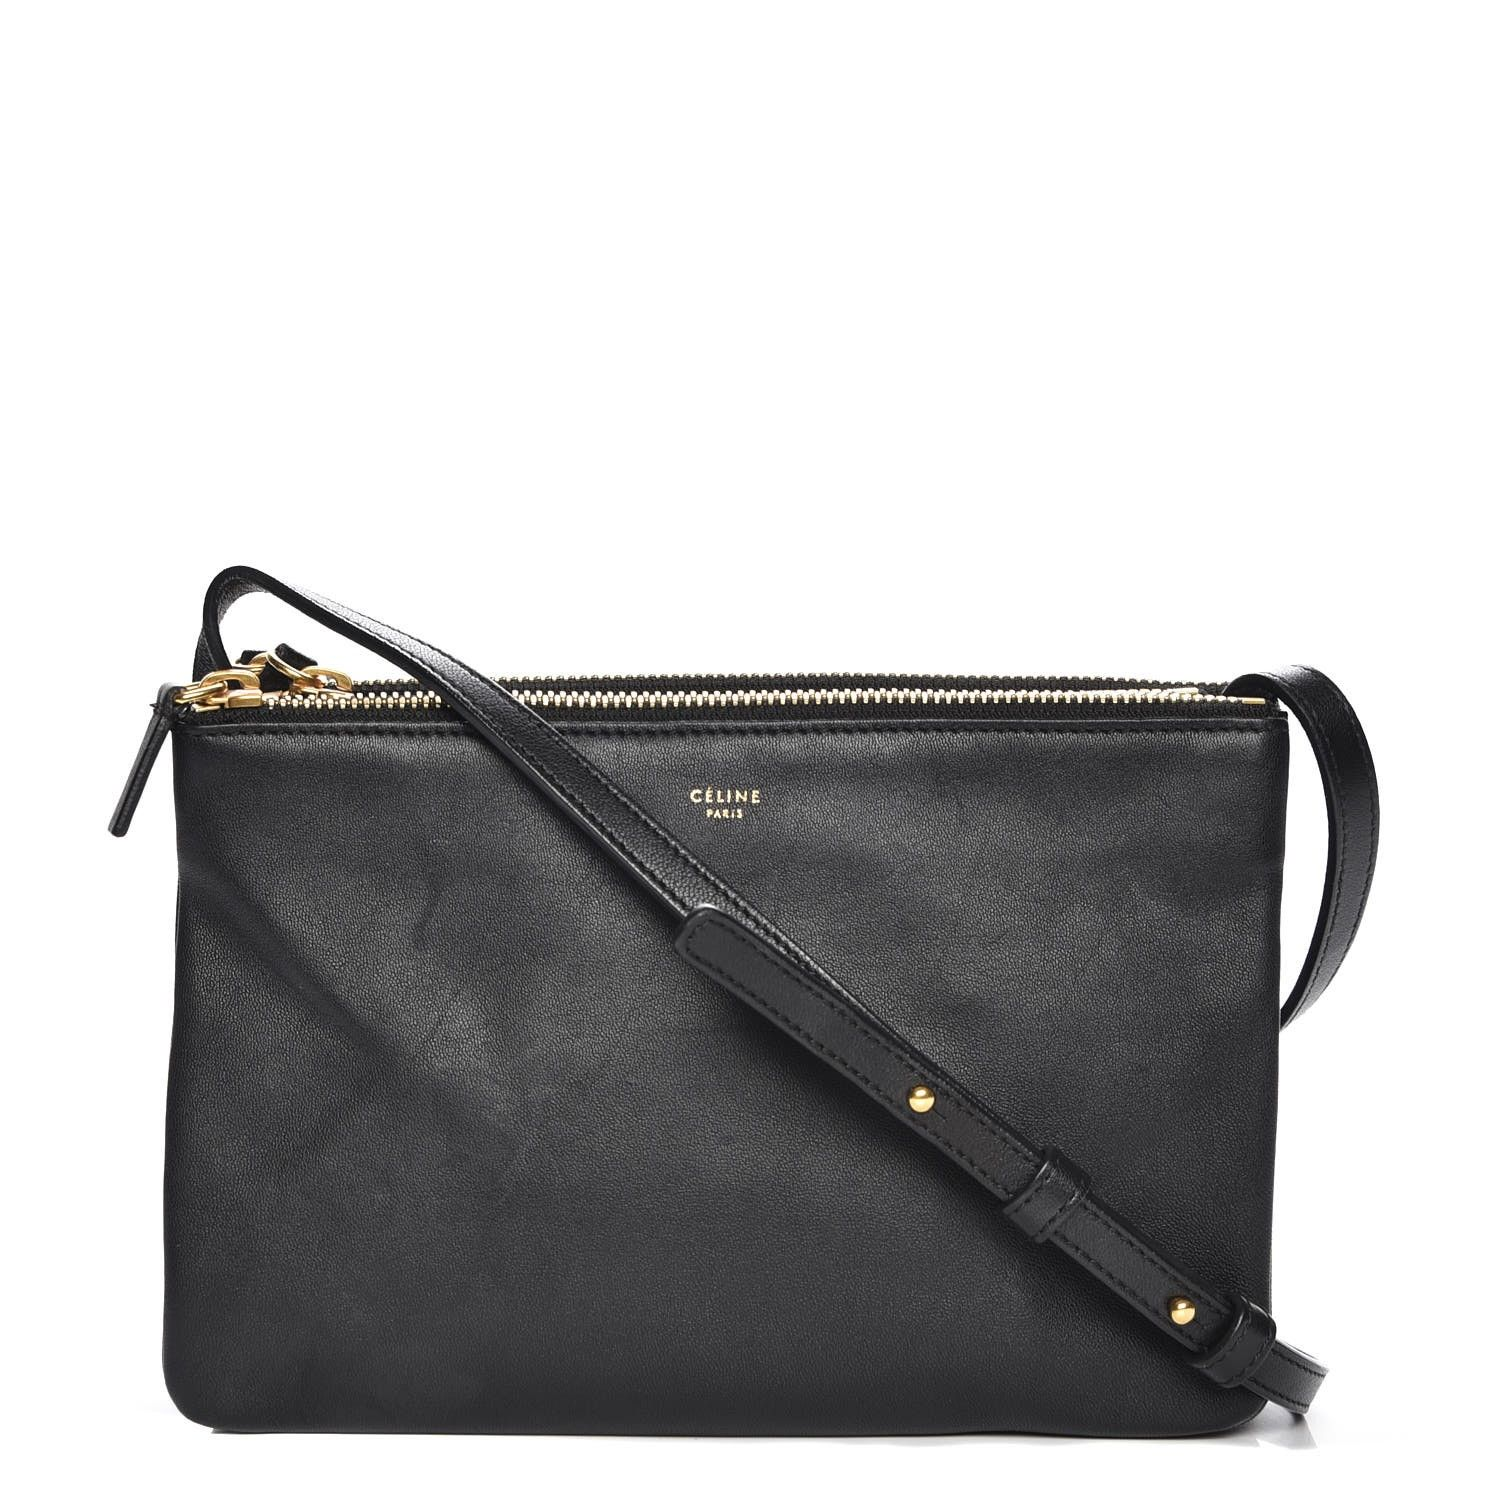 8a9ded5a7d38 This is an authentic CELINE Lambskin Small Trio Crossbody Bag in Black.  This chic cross